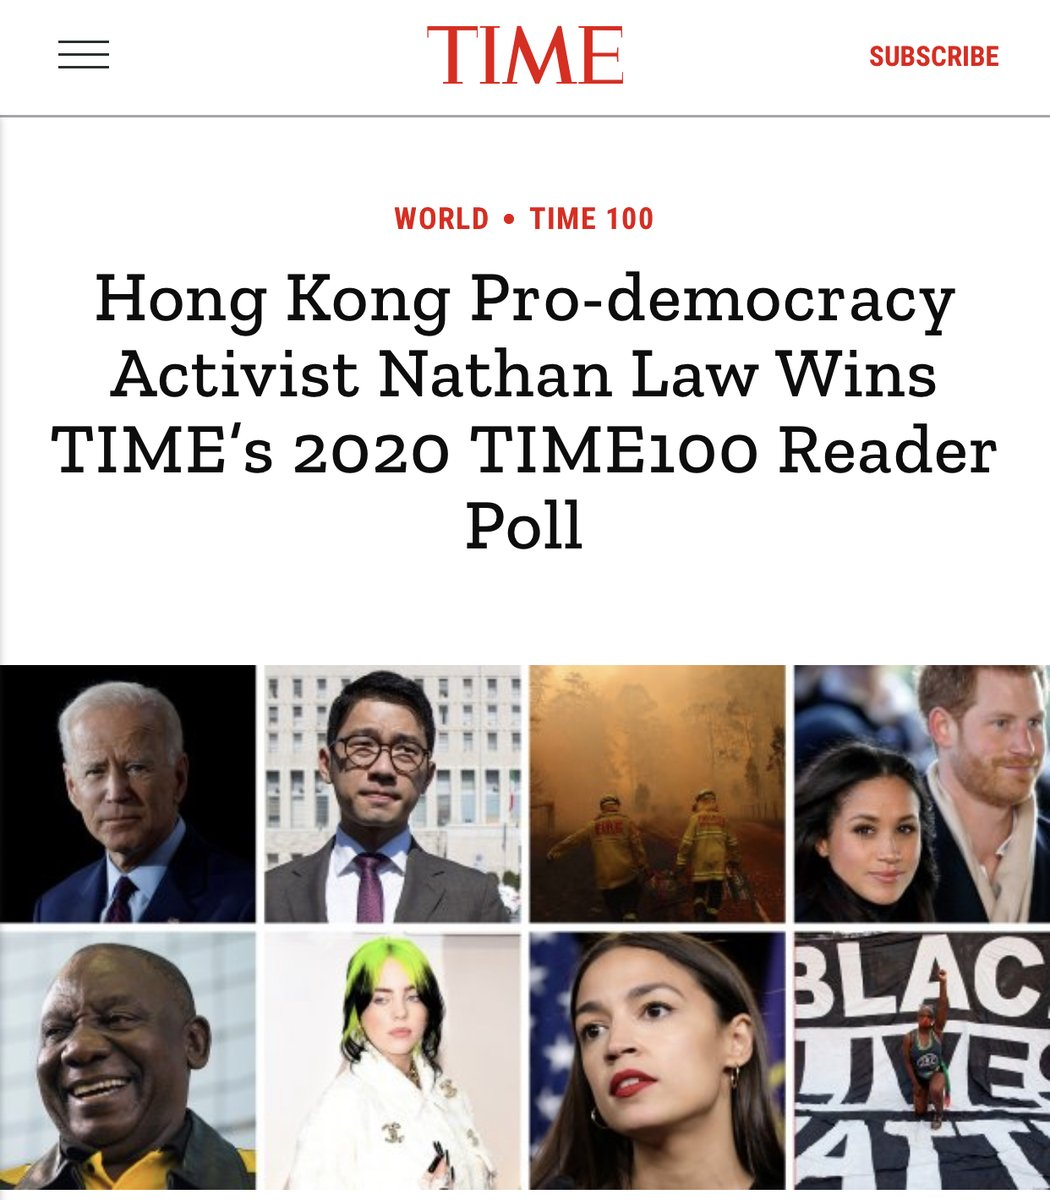 THREAD: 1. Thank you very much for all your support. It is my pleasure to gain the highest votes in the Time 100 Reader Poll this year. The result shows Hongkongers' relentless passion for this city and our unwavering spirit of resistance. https://t.co/37sqRgFTNW